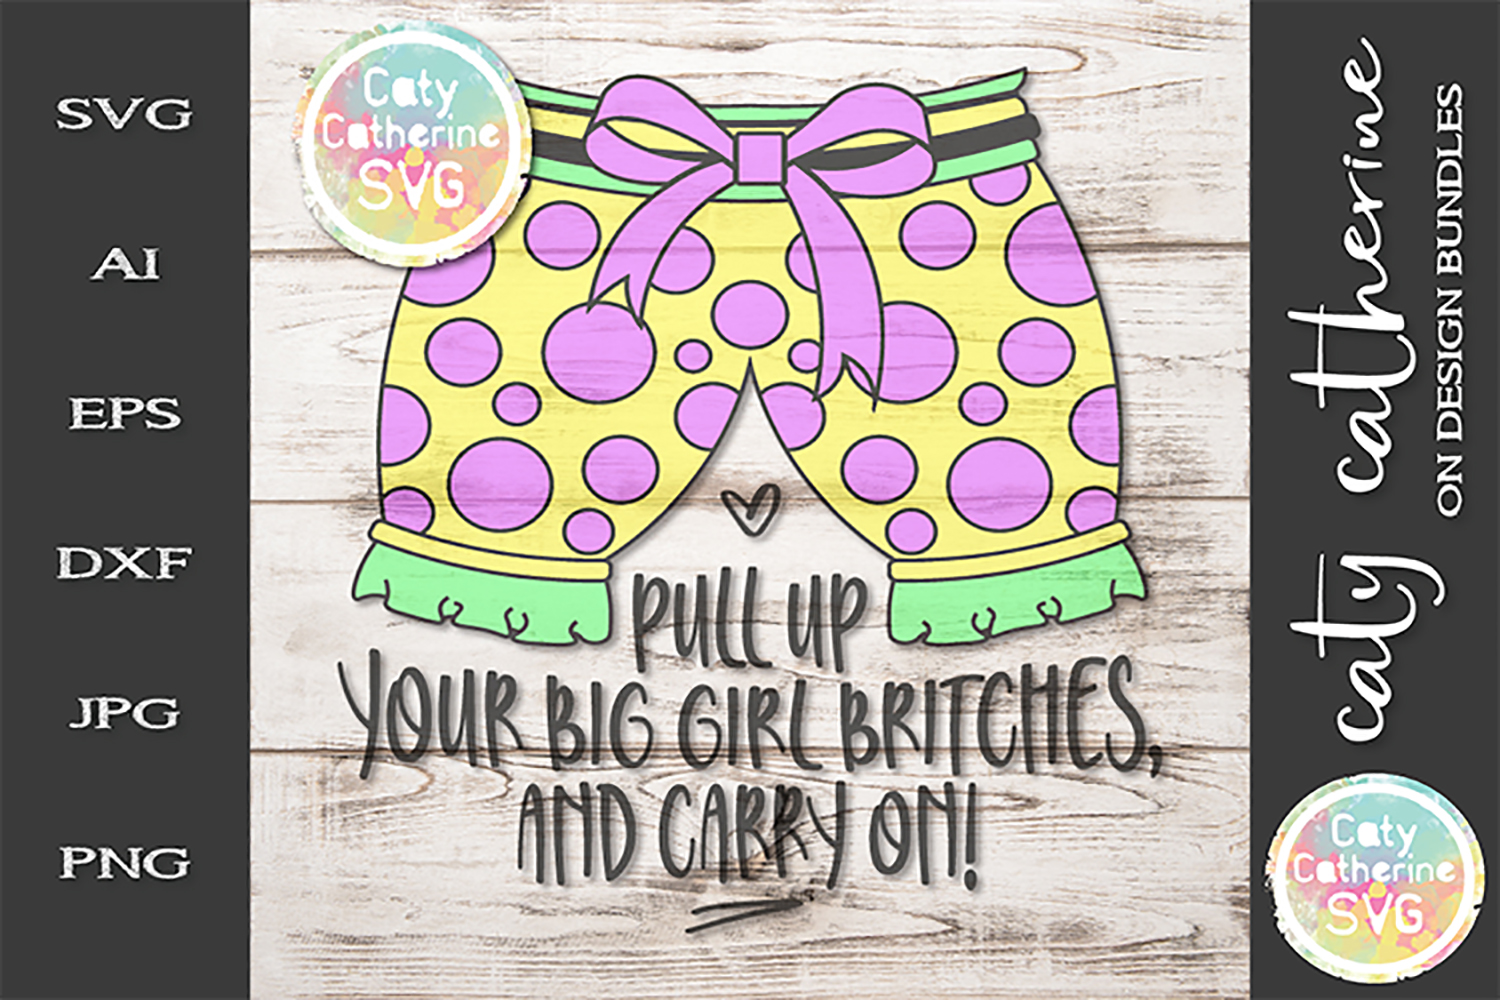 Pull Up Your Big Girl Britches, And Carry On SVG Cut File example image 1